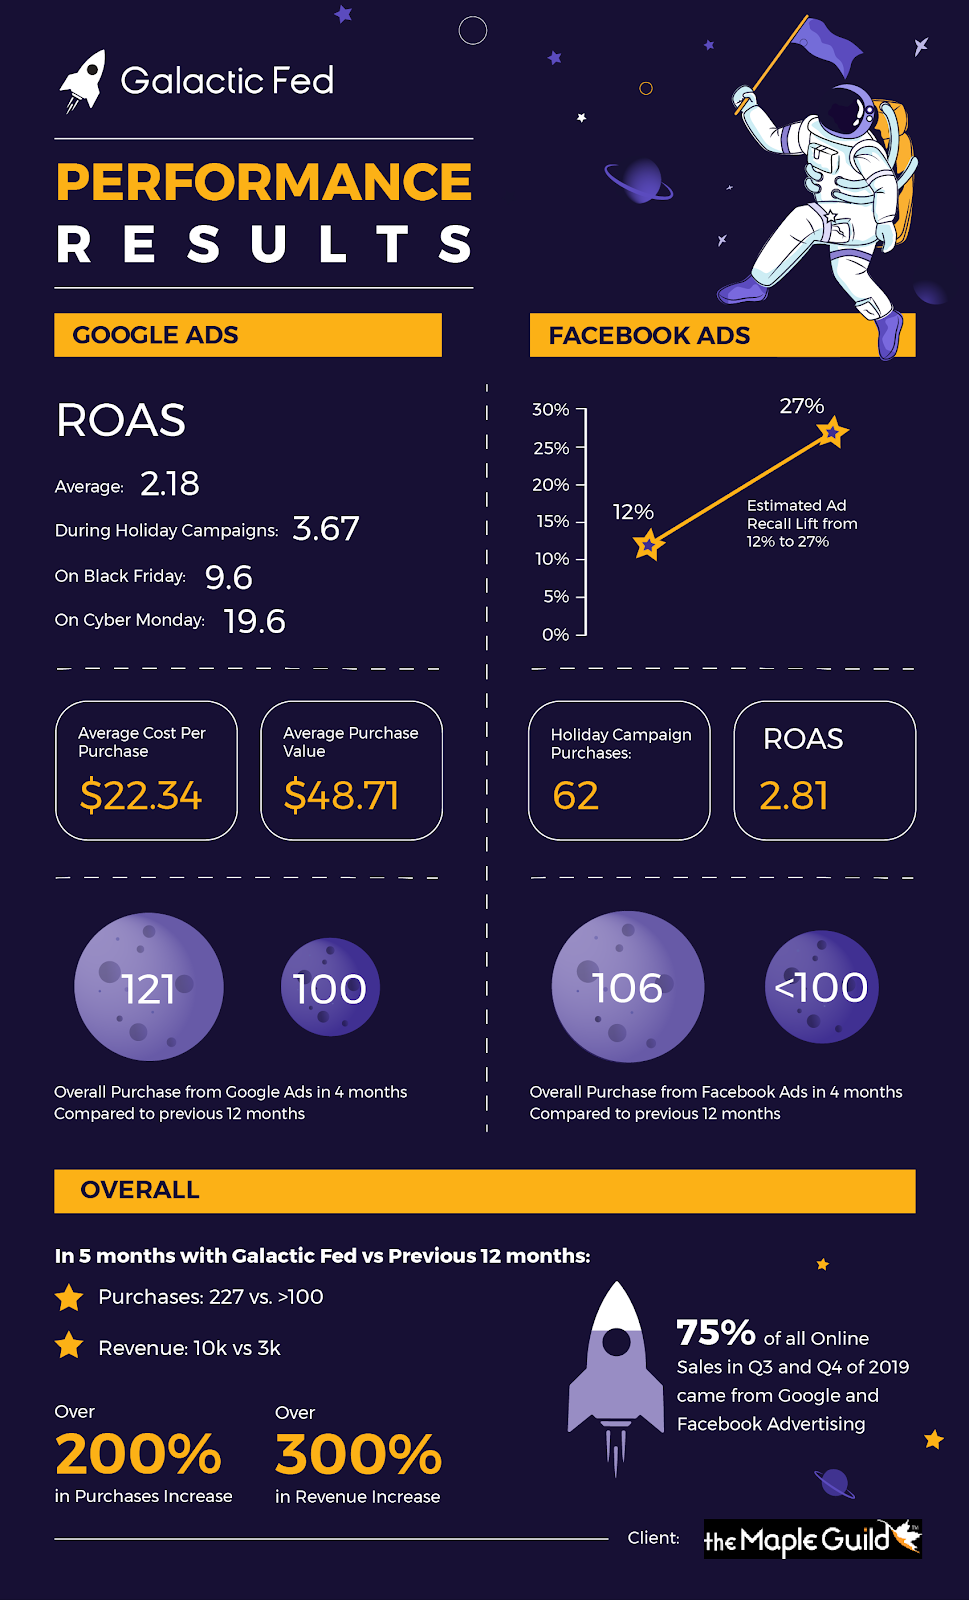 the Maple Guide Infographic of the Galactic Fed performance results.